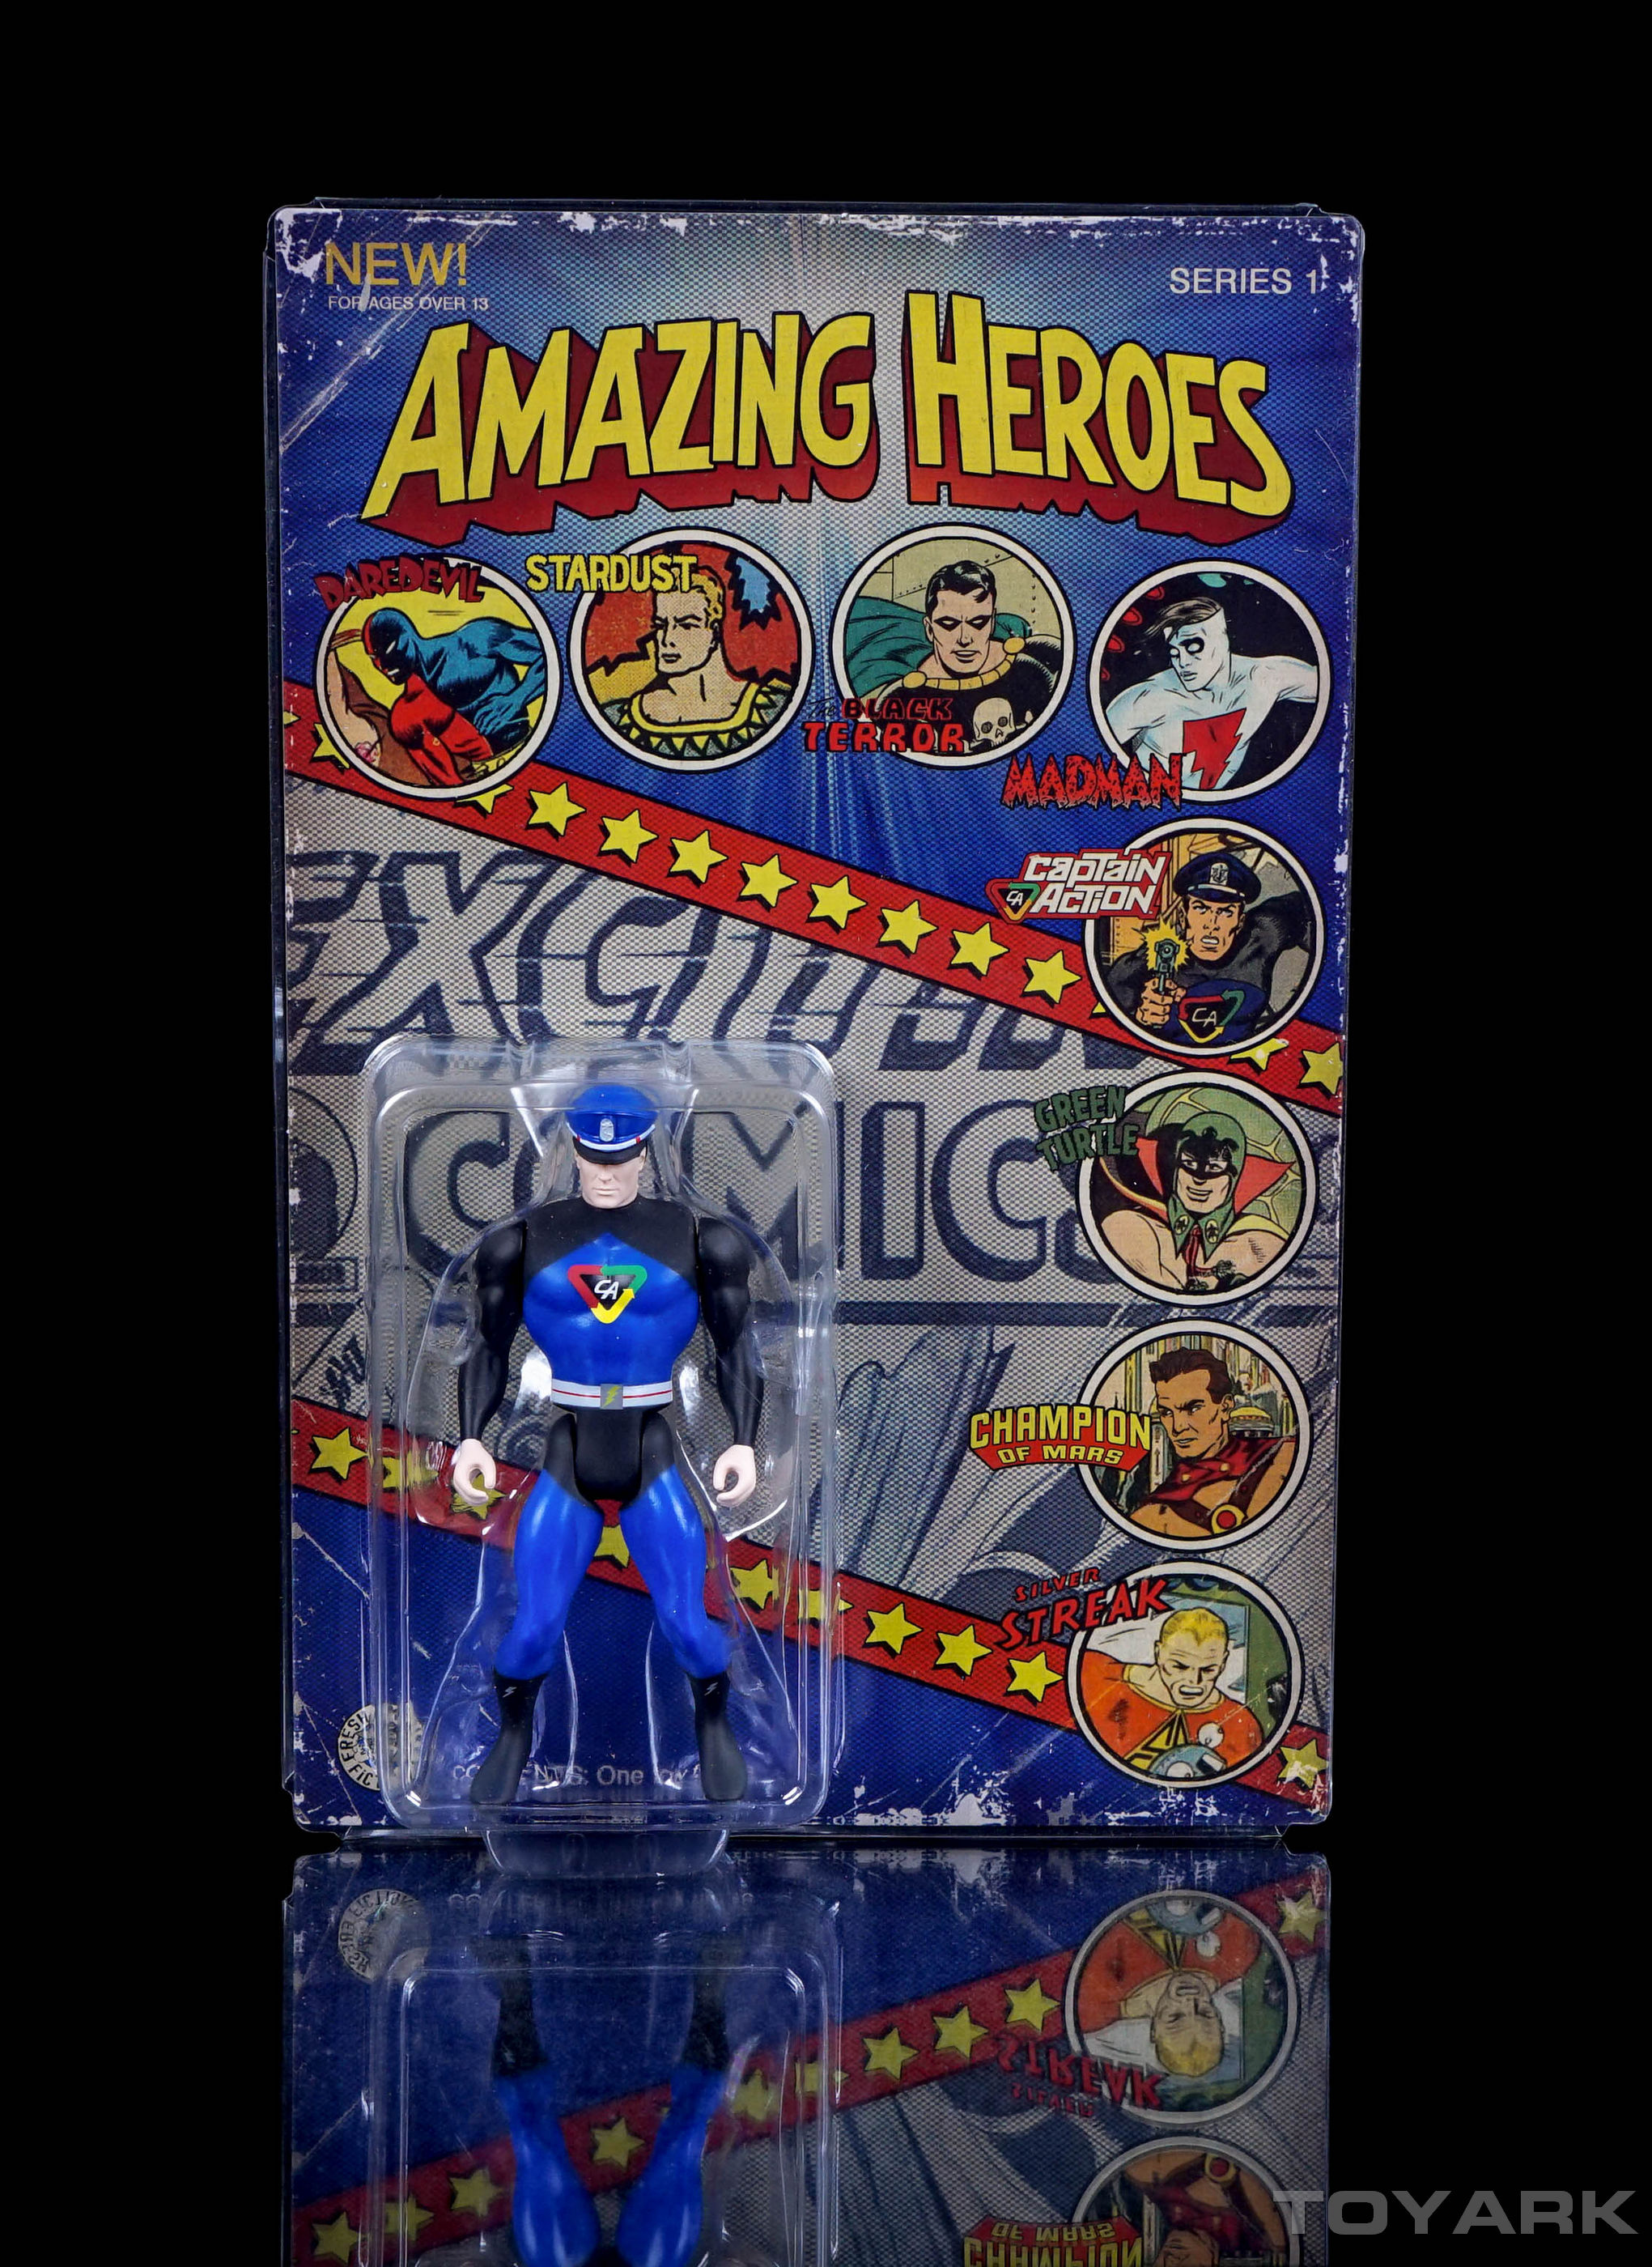 http://news.toyark.com/wp-content/uploads/sites/4/2016/03/Amazing-Heroes-Captain-Action-001.jpg